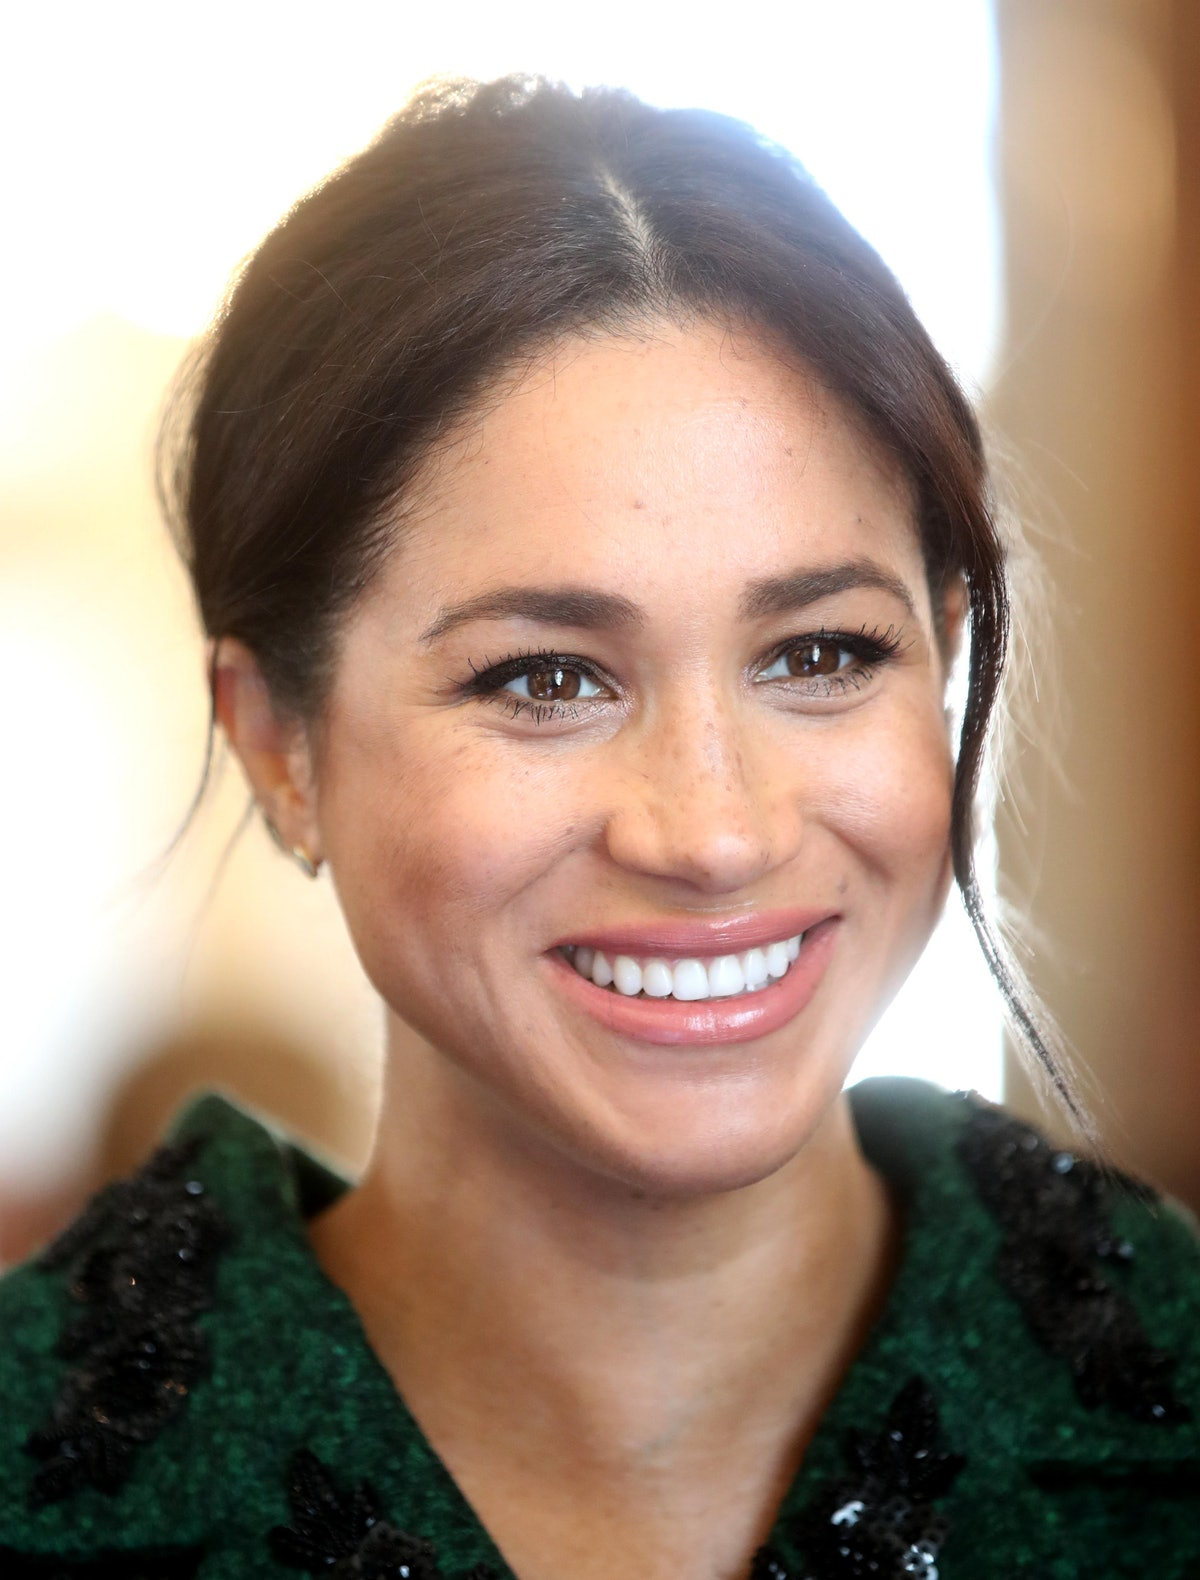 Did Meghan Markle Date Matt Cardle? She Slid Into His DMs & Here's What Happened Next